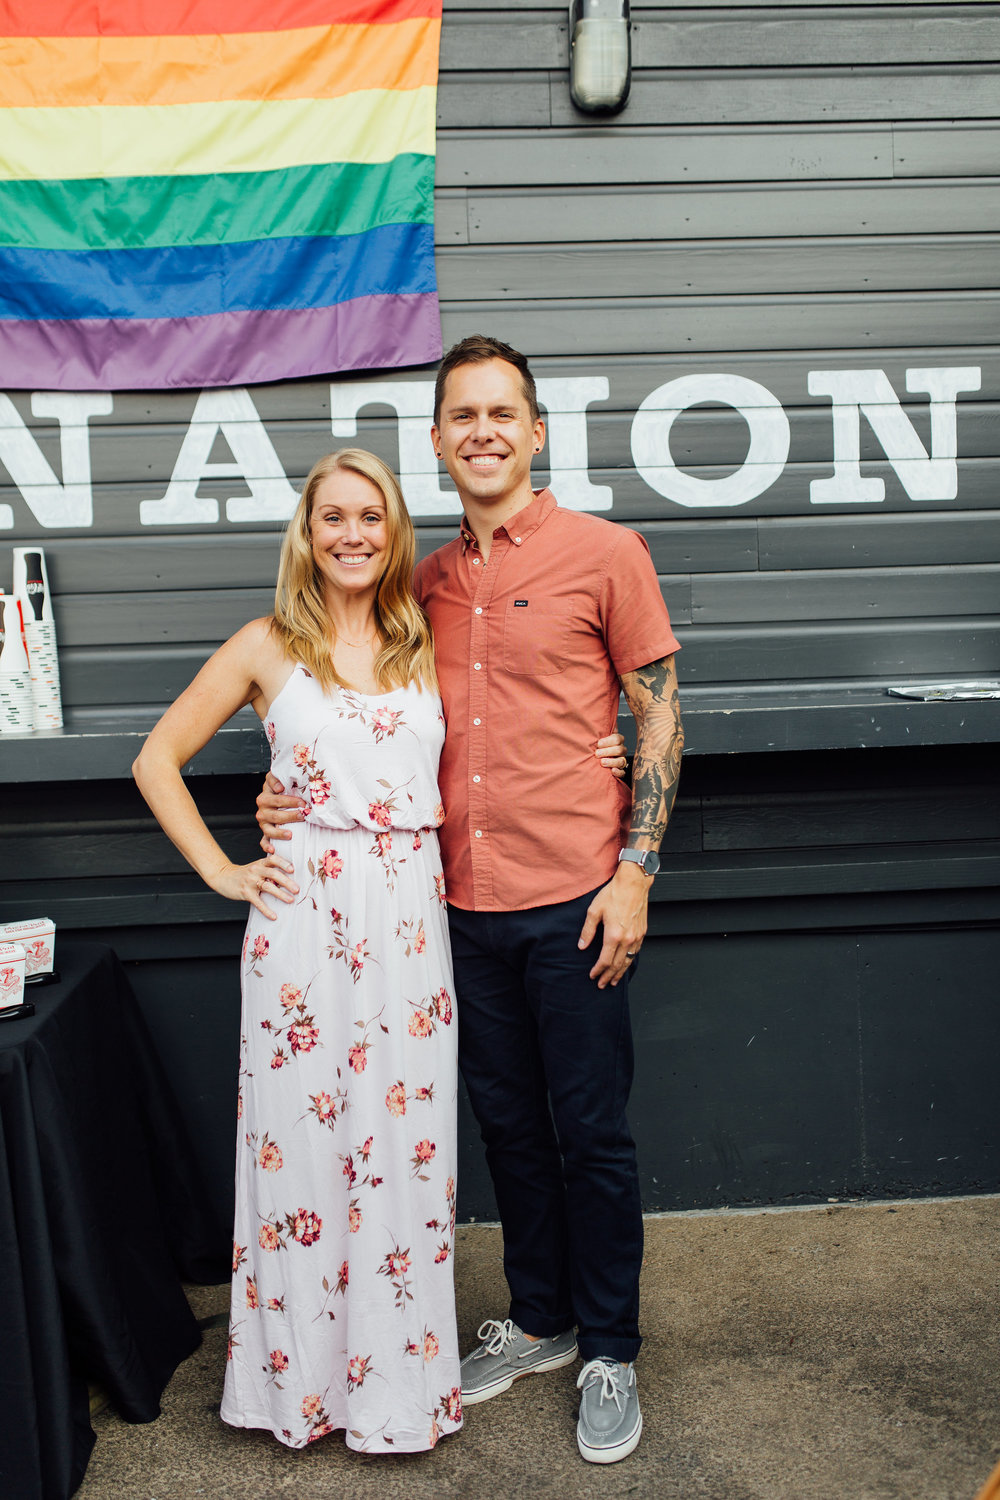 SeattleEventAug2018(12of238).jpg